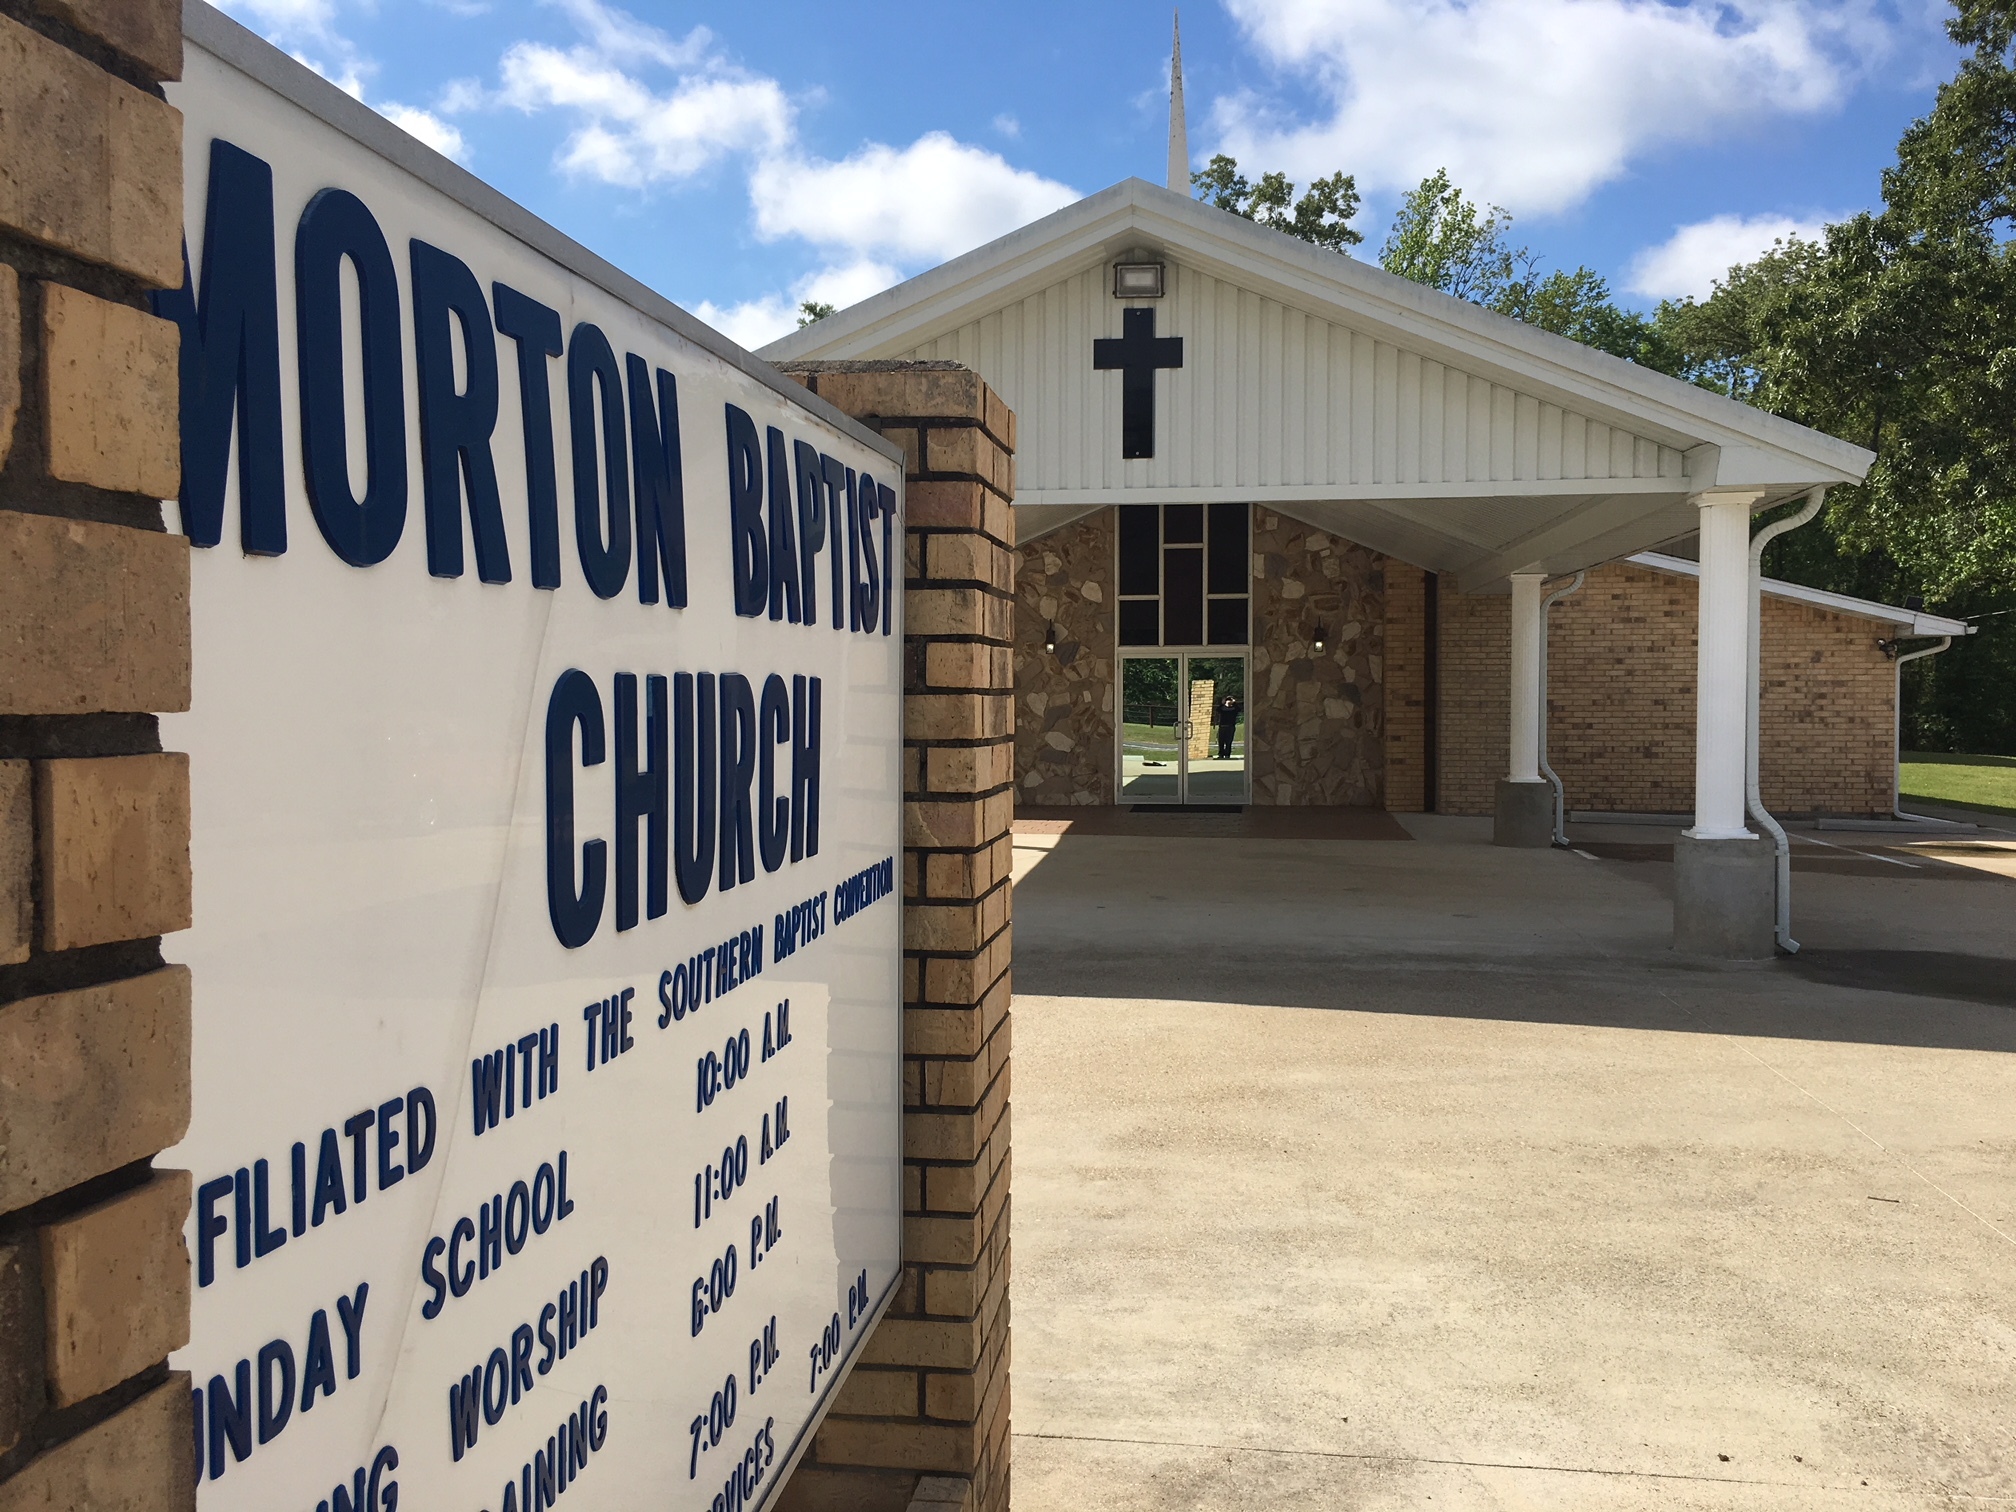 Morton Baptist sign